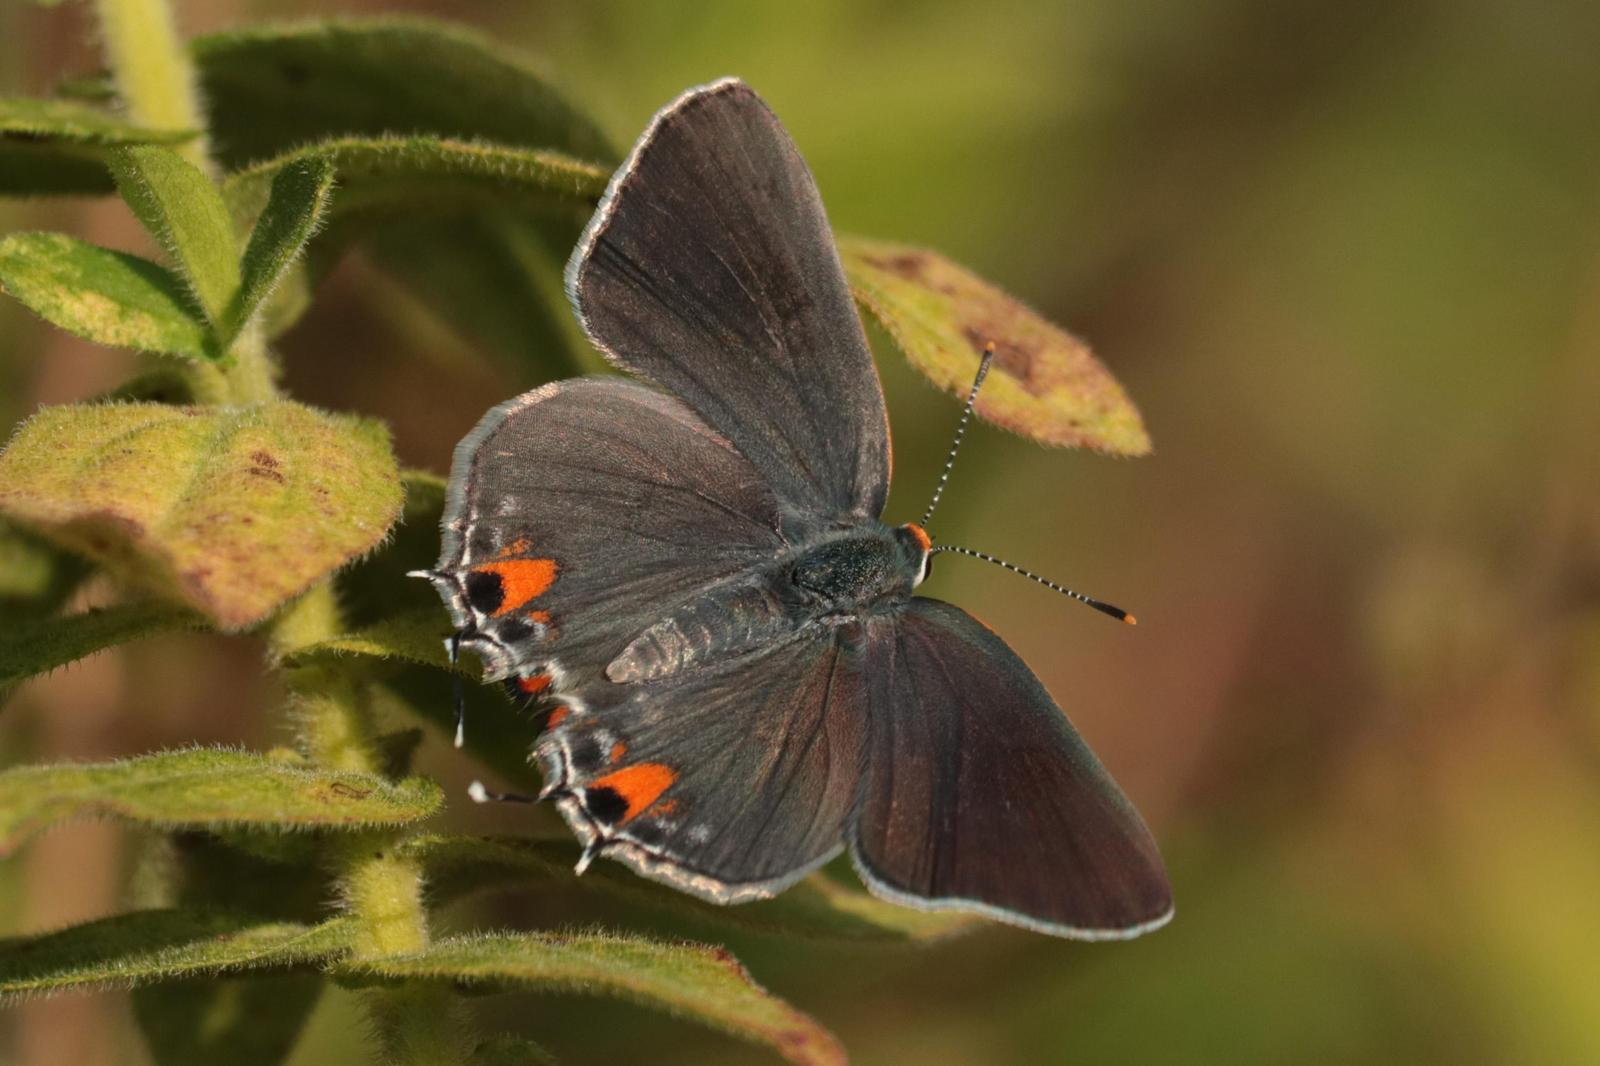 Gray Hairstreak Photo by Kristy Baker